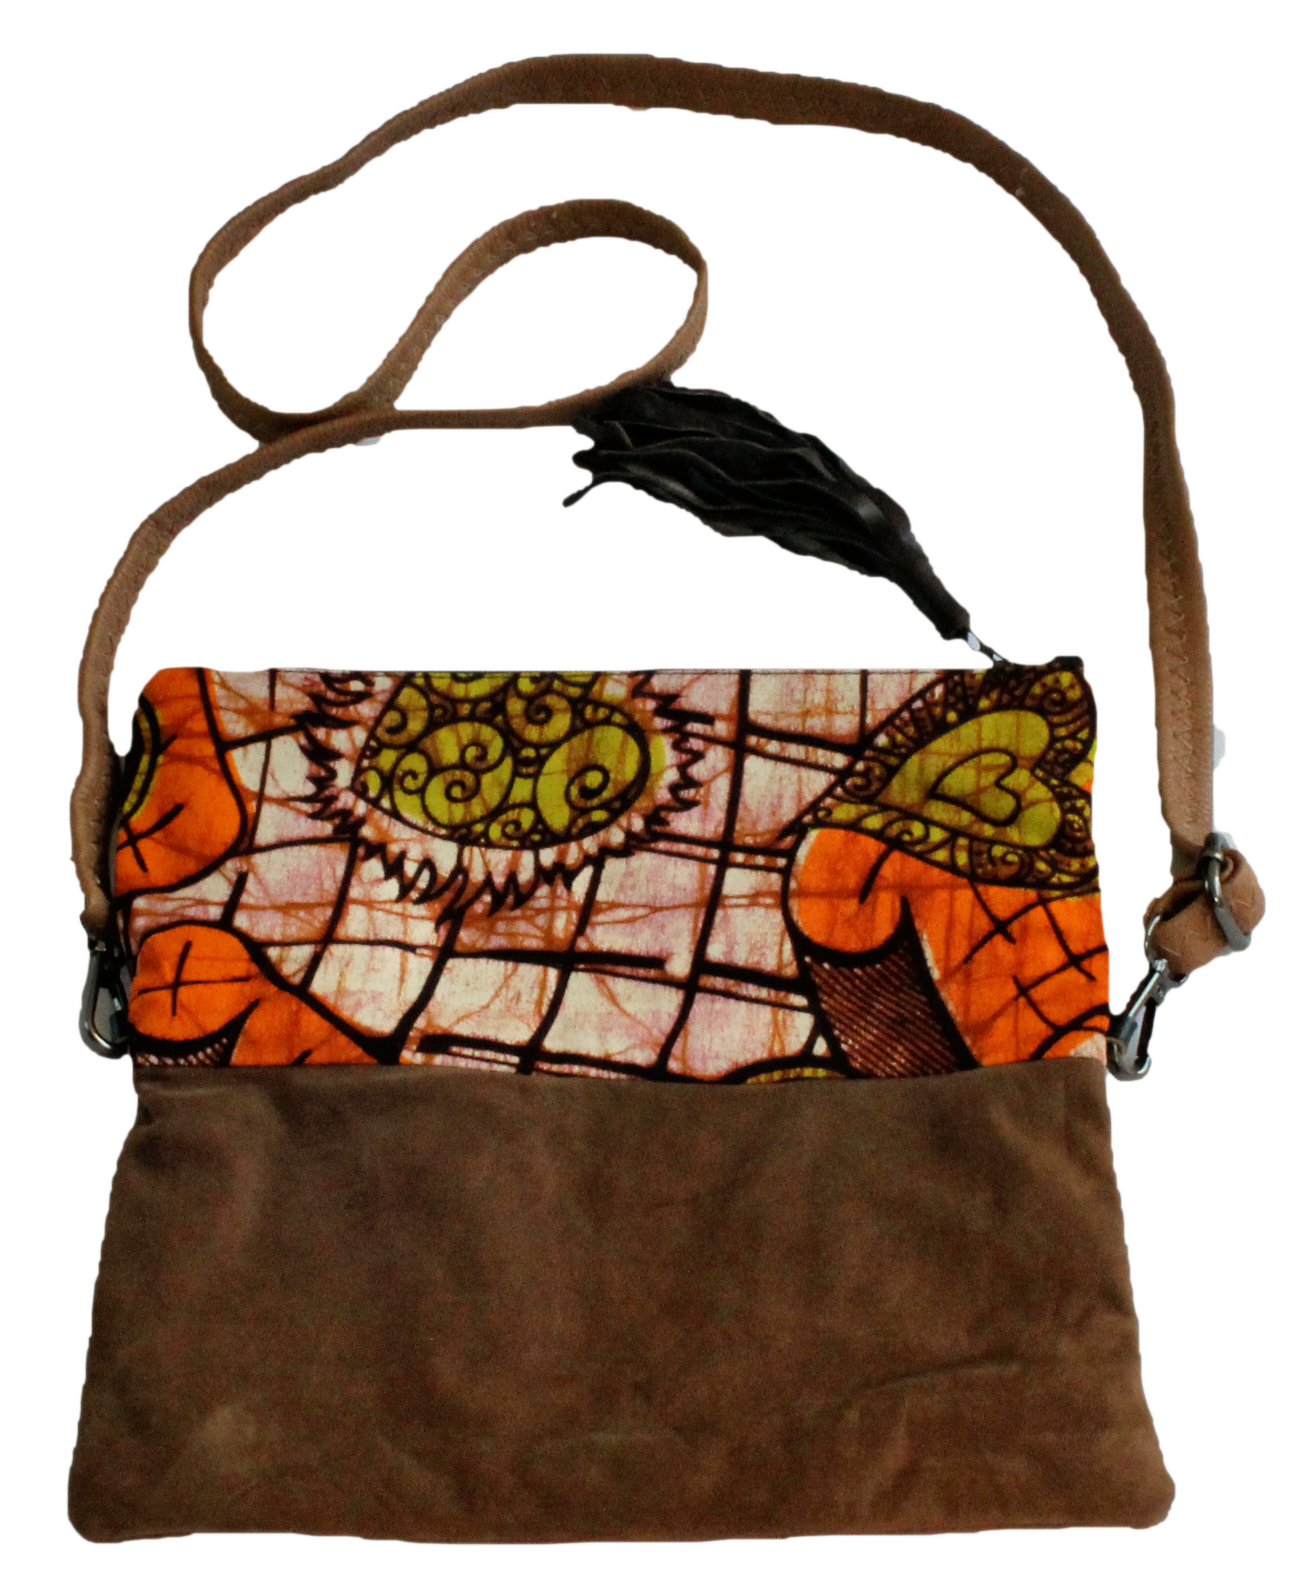 Handmade crossbody bag, upcycled leather, African print, Kitenge fashion, Ankara fashion, brown suede, with strap